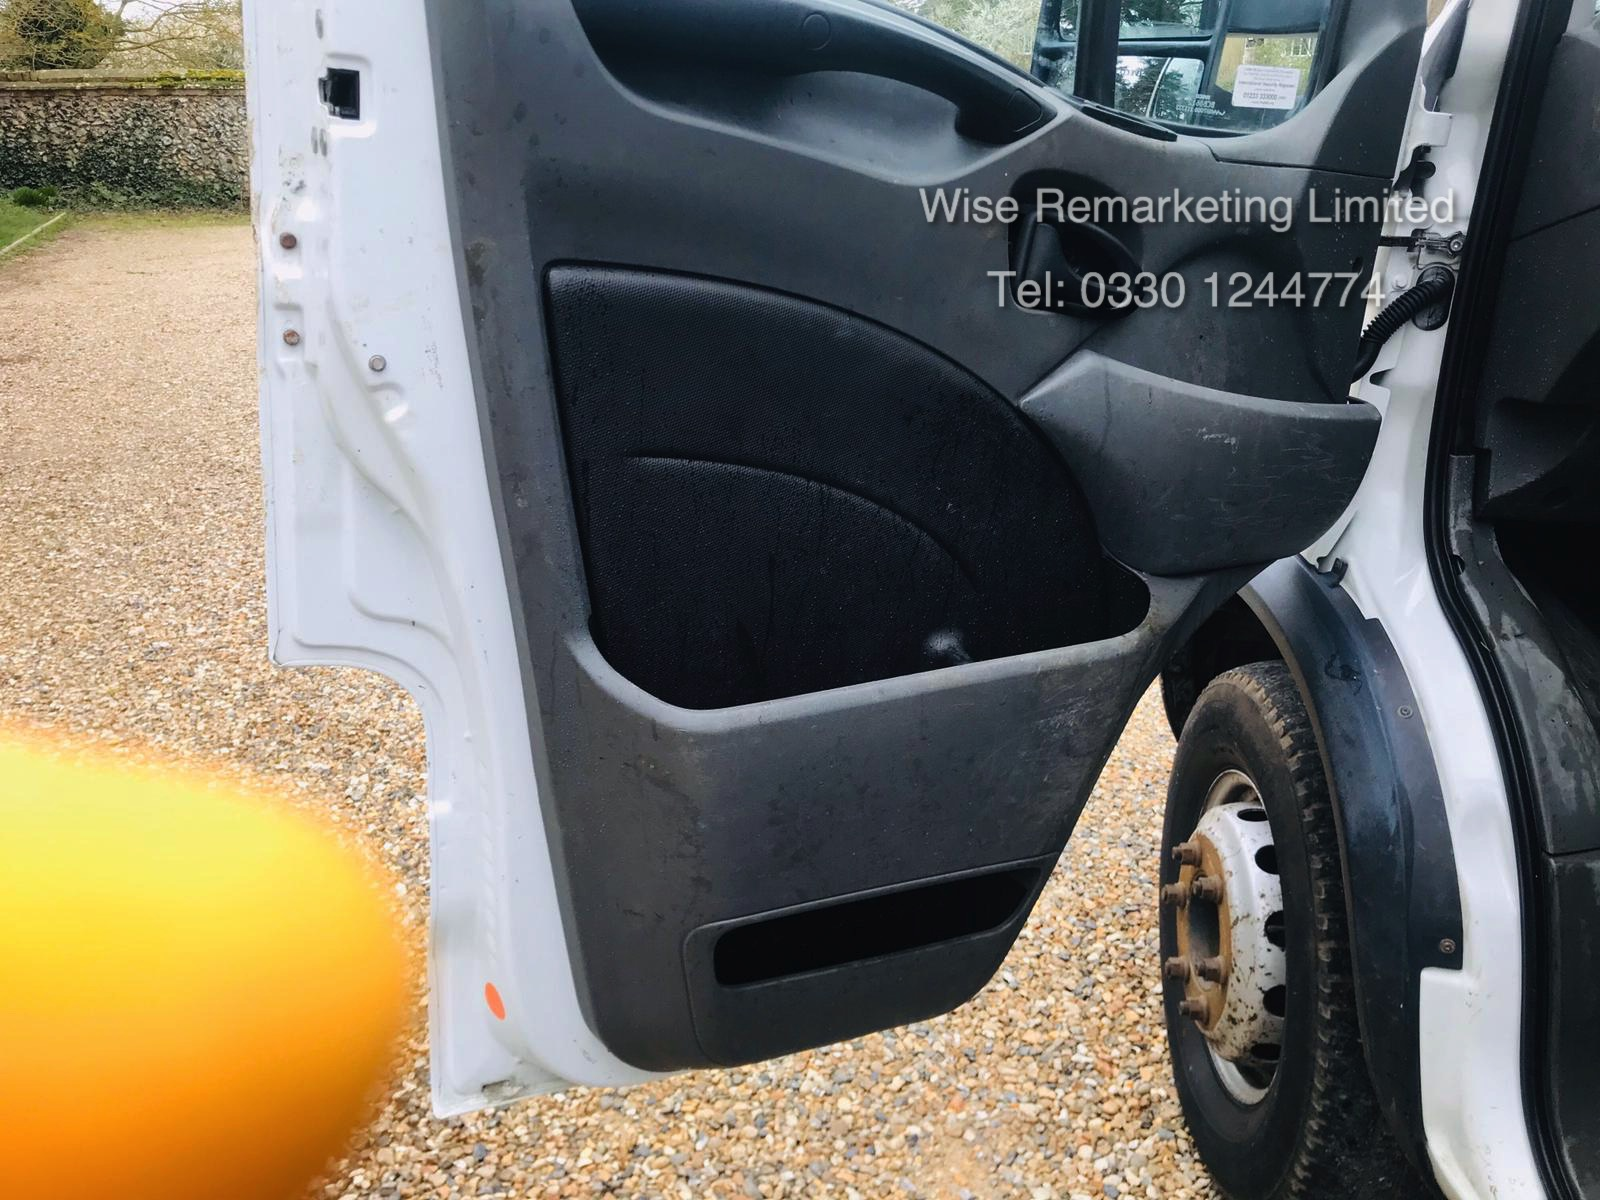 Iveco Daily 3.0 TD 60C18 Tipper (Twin Wheeler) - 6 Speed - 2011 Model - 1 Keeper SAVE 20% NO VAT - Image 13 of 18